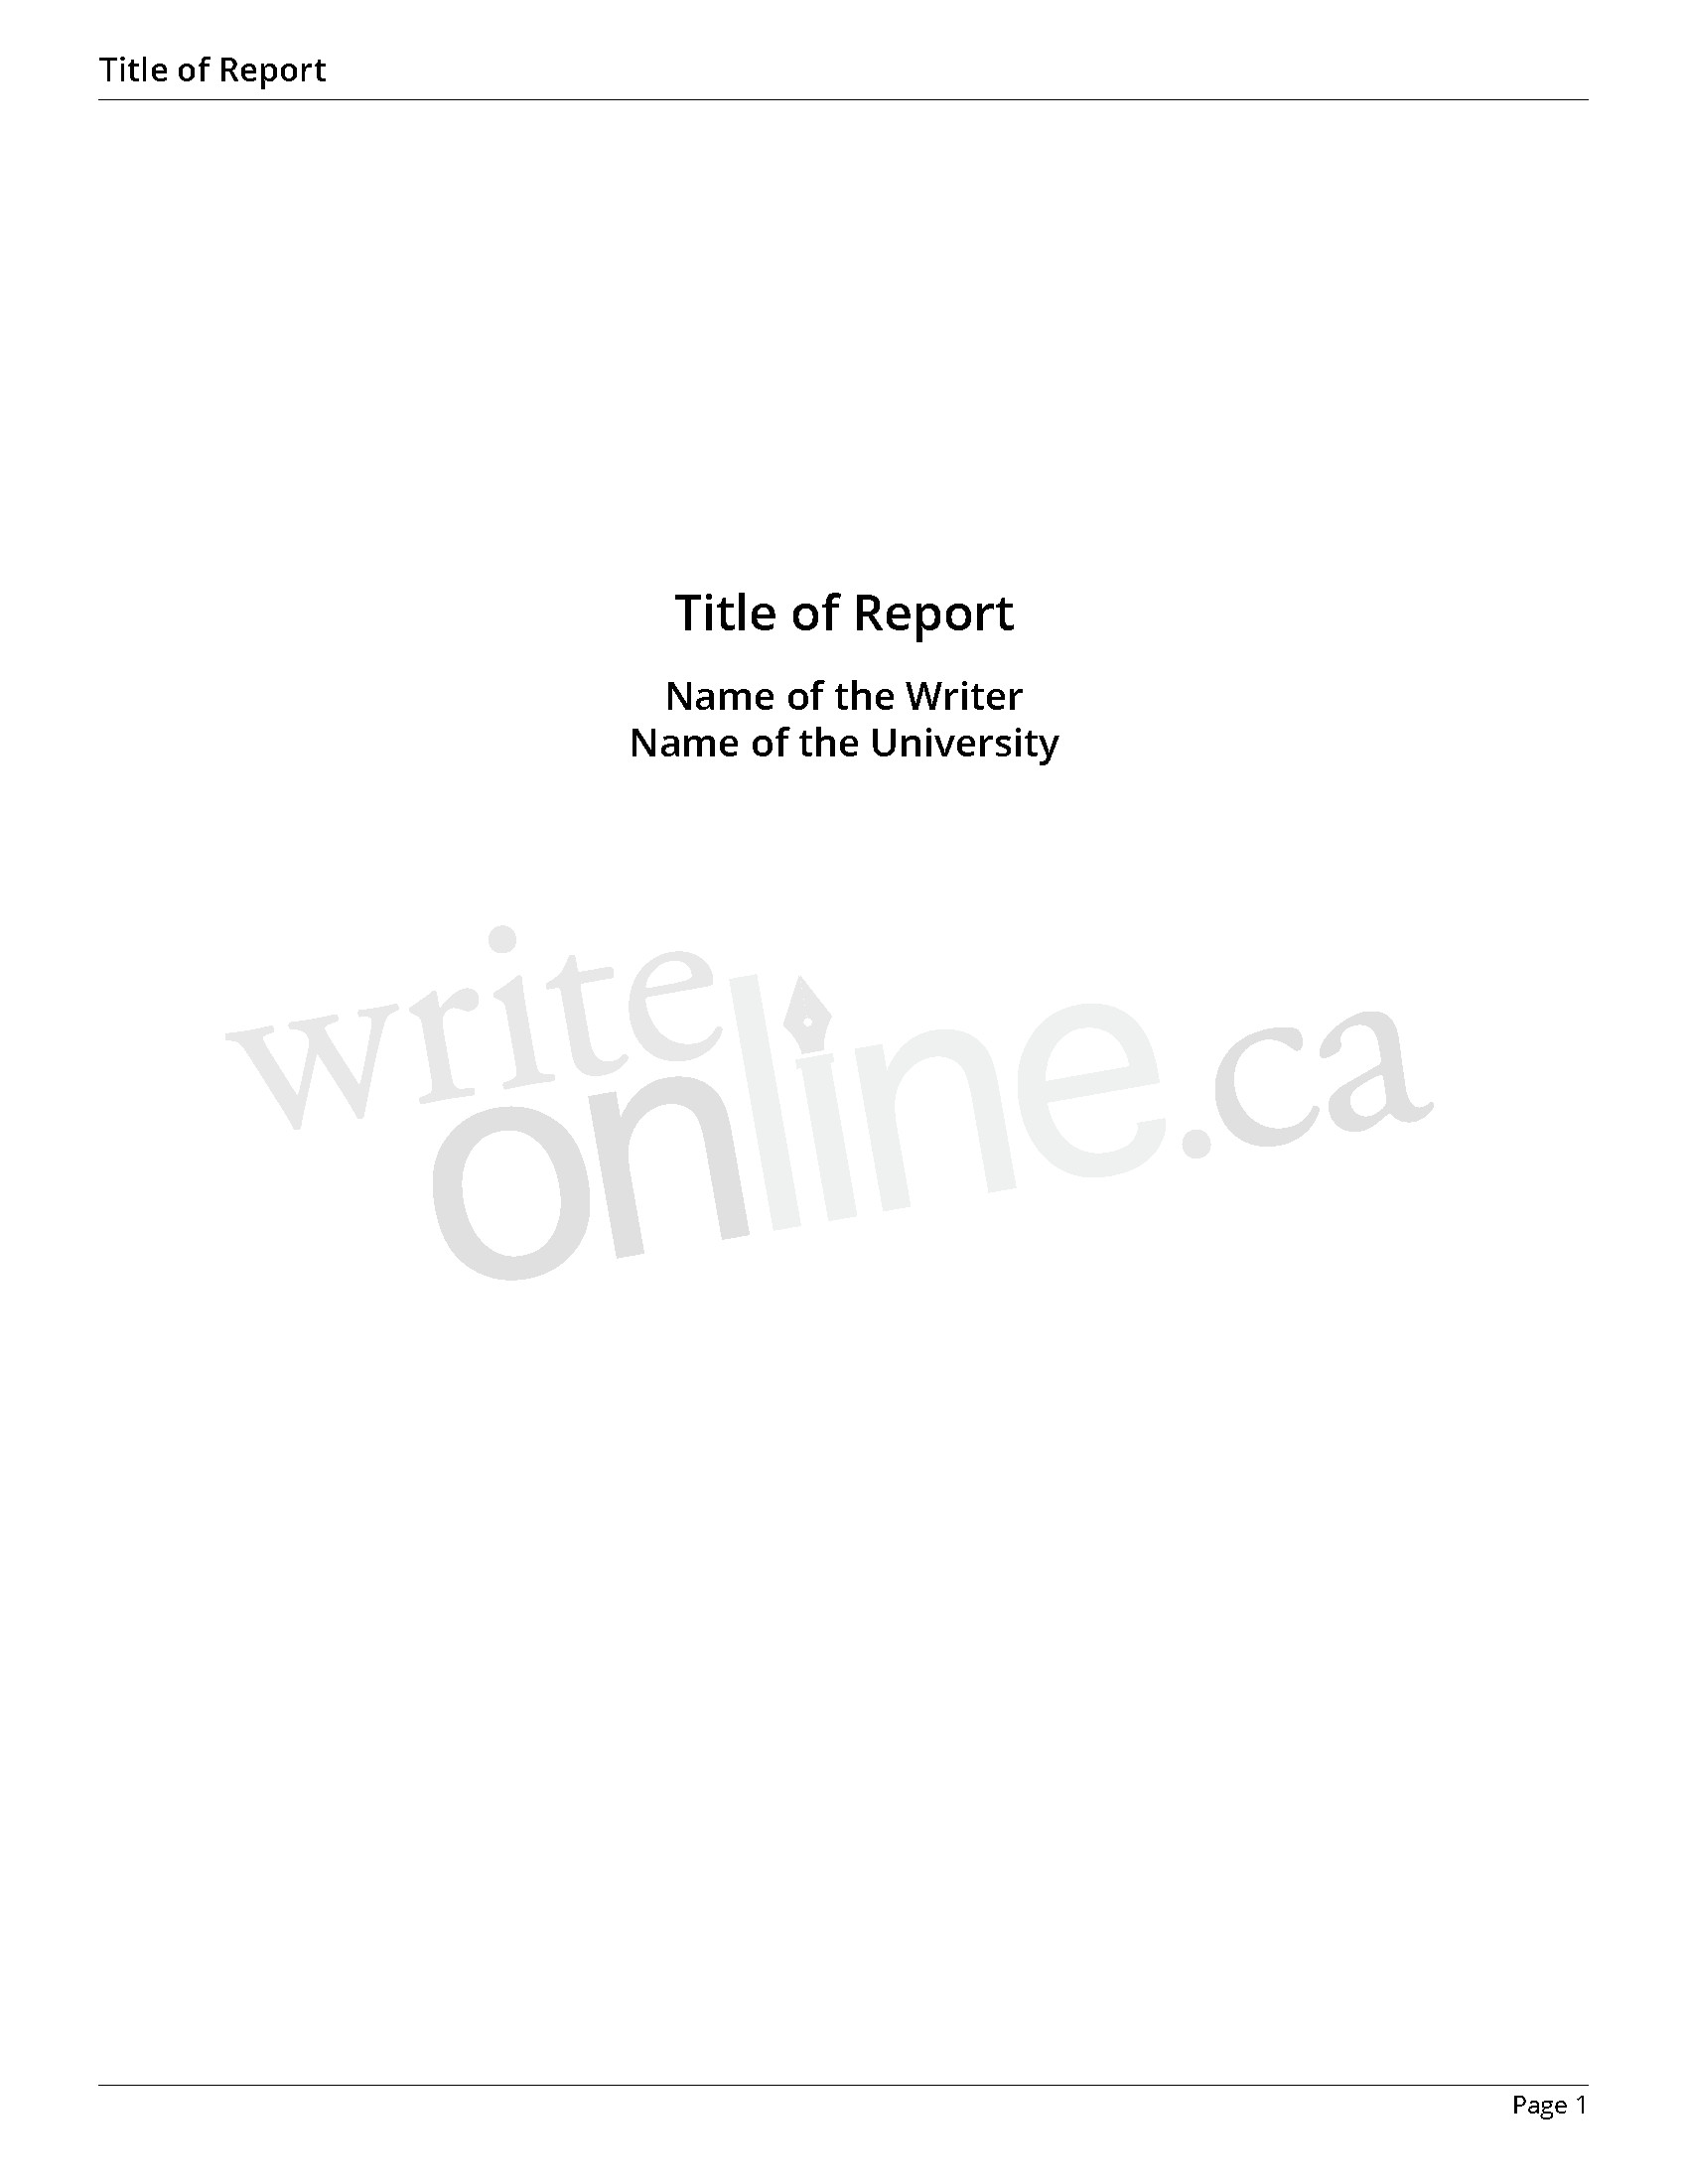 Autobiography Cover Page Template Bio Lab Report Introduction Example